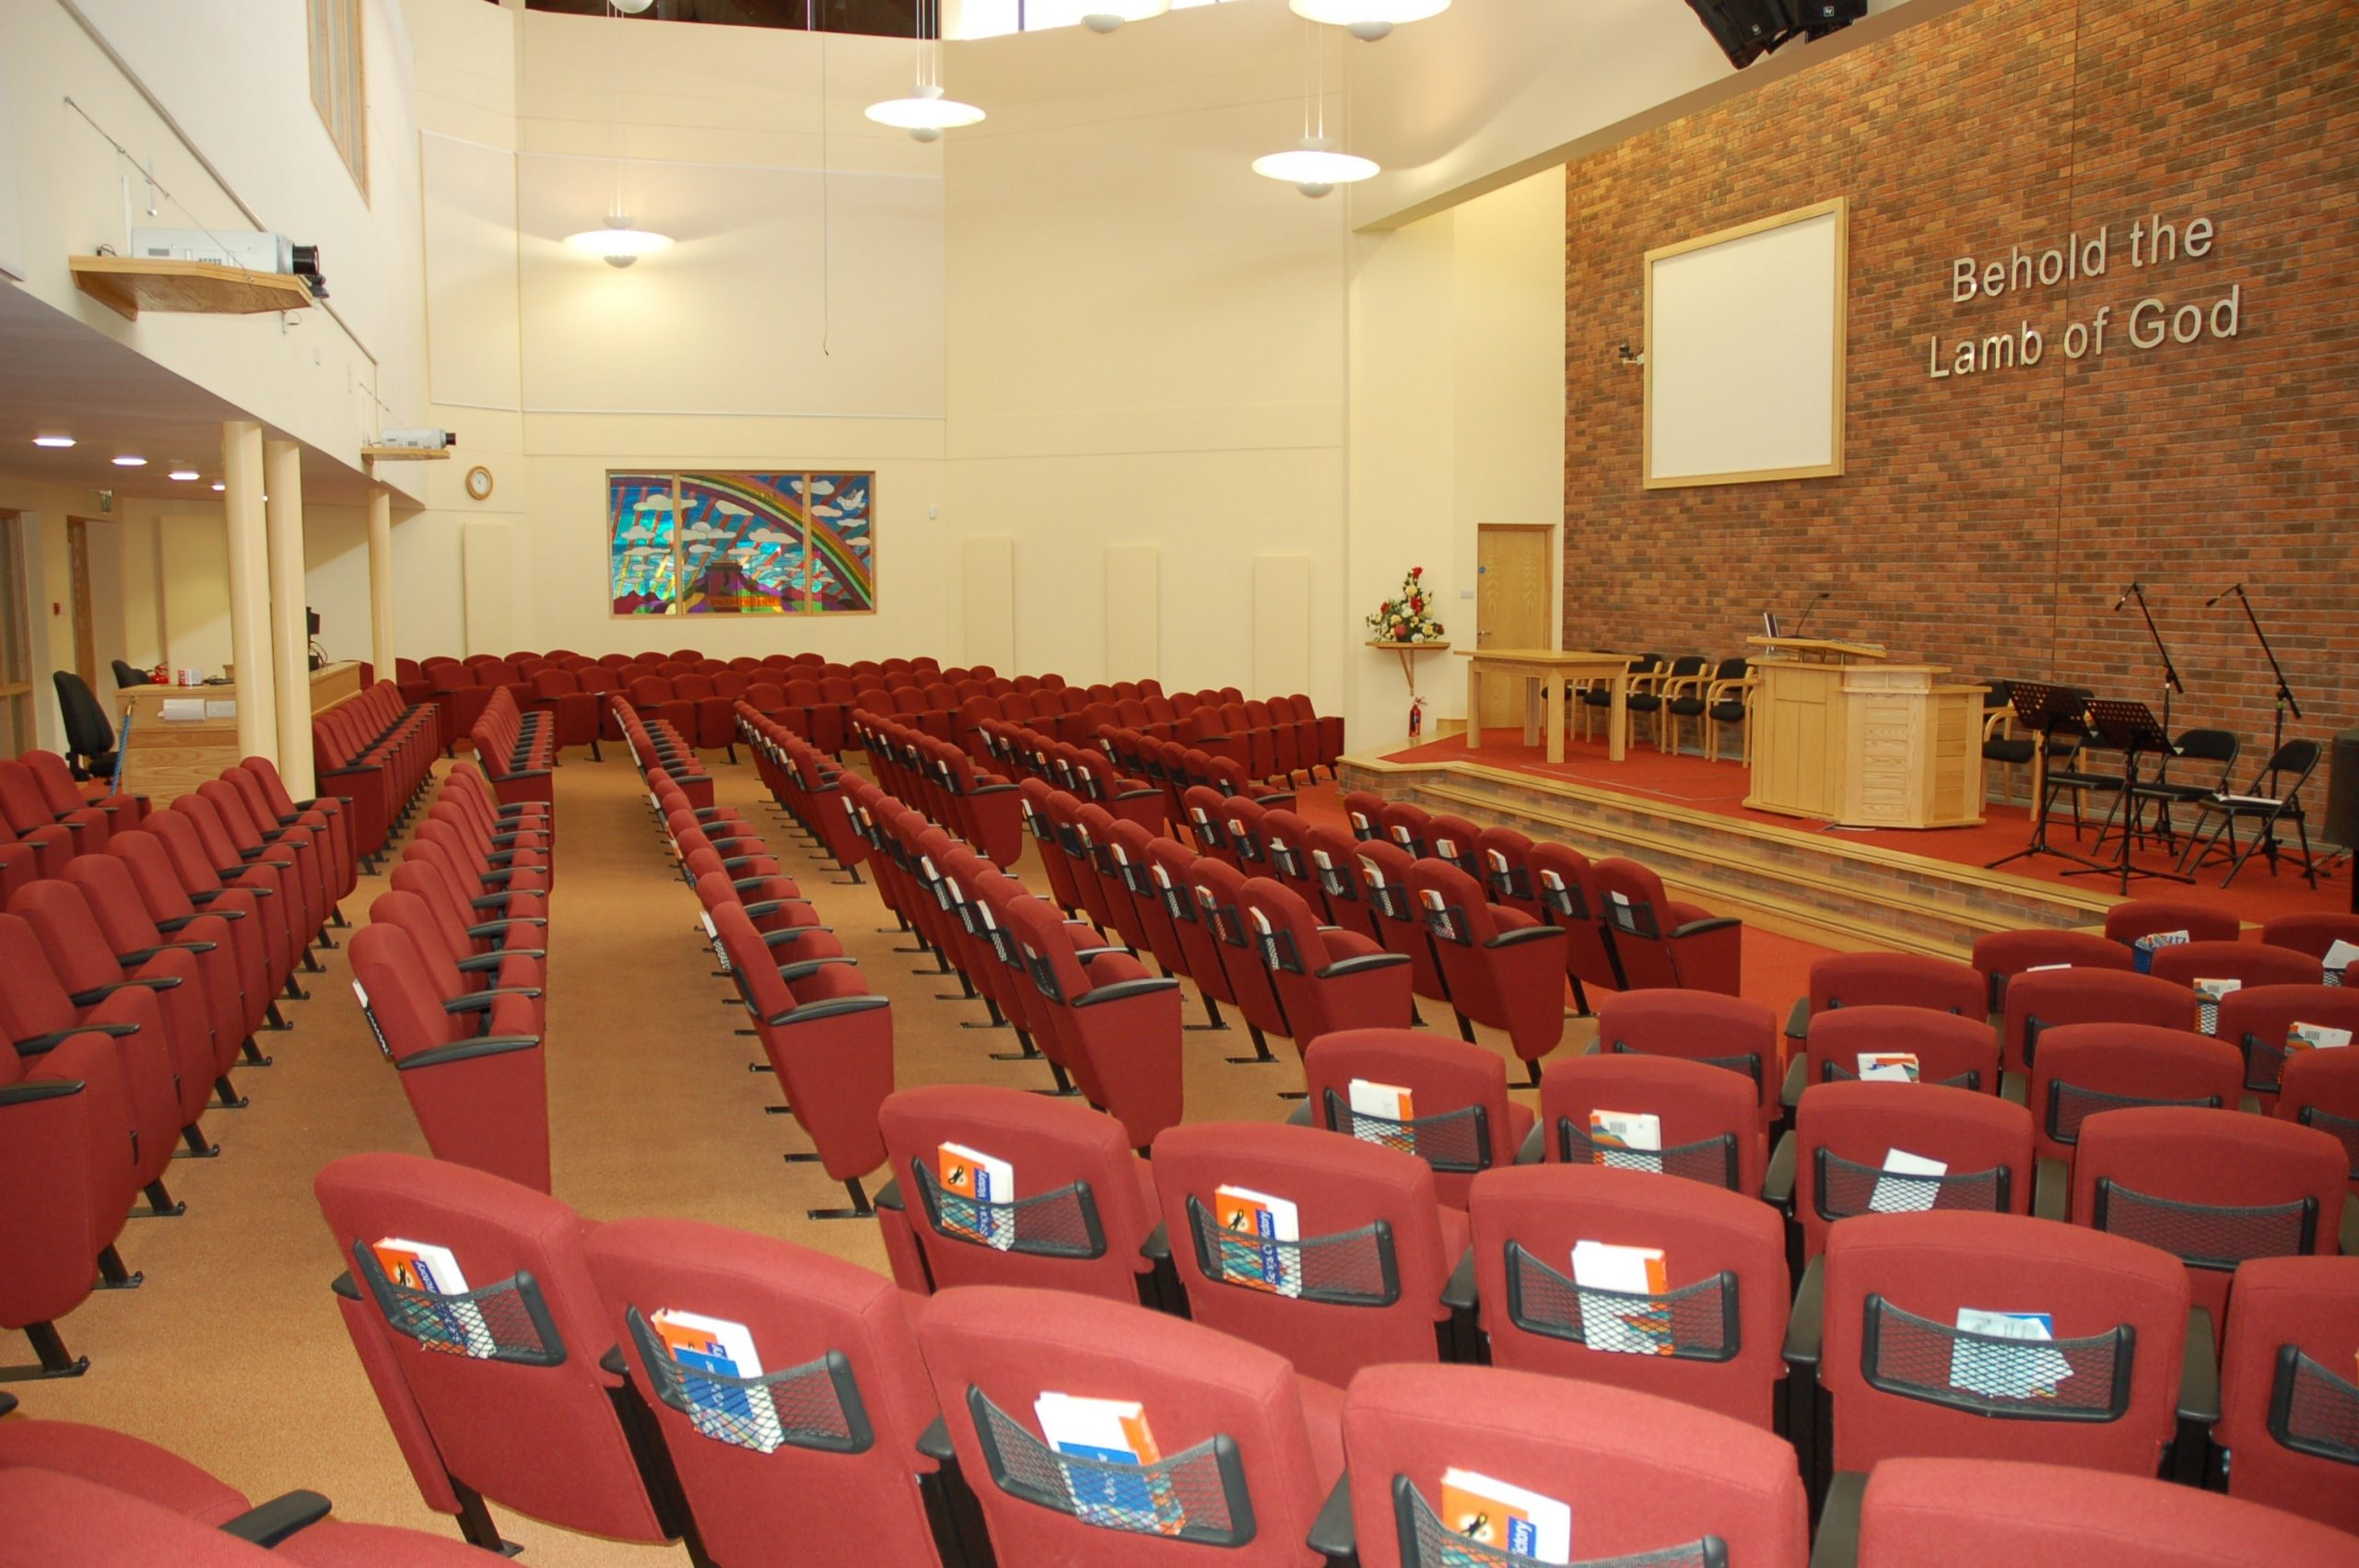 Church Seating Solutions - Theatre & Auditorium Seats For